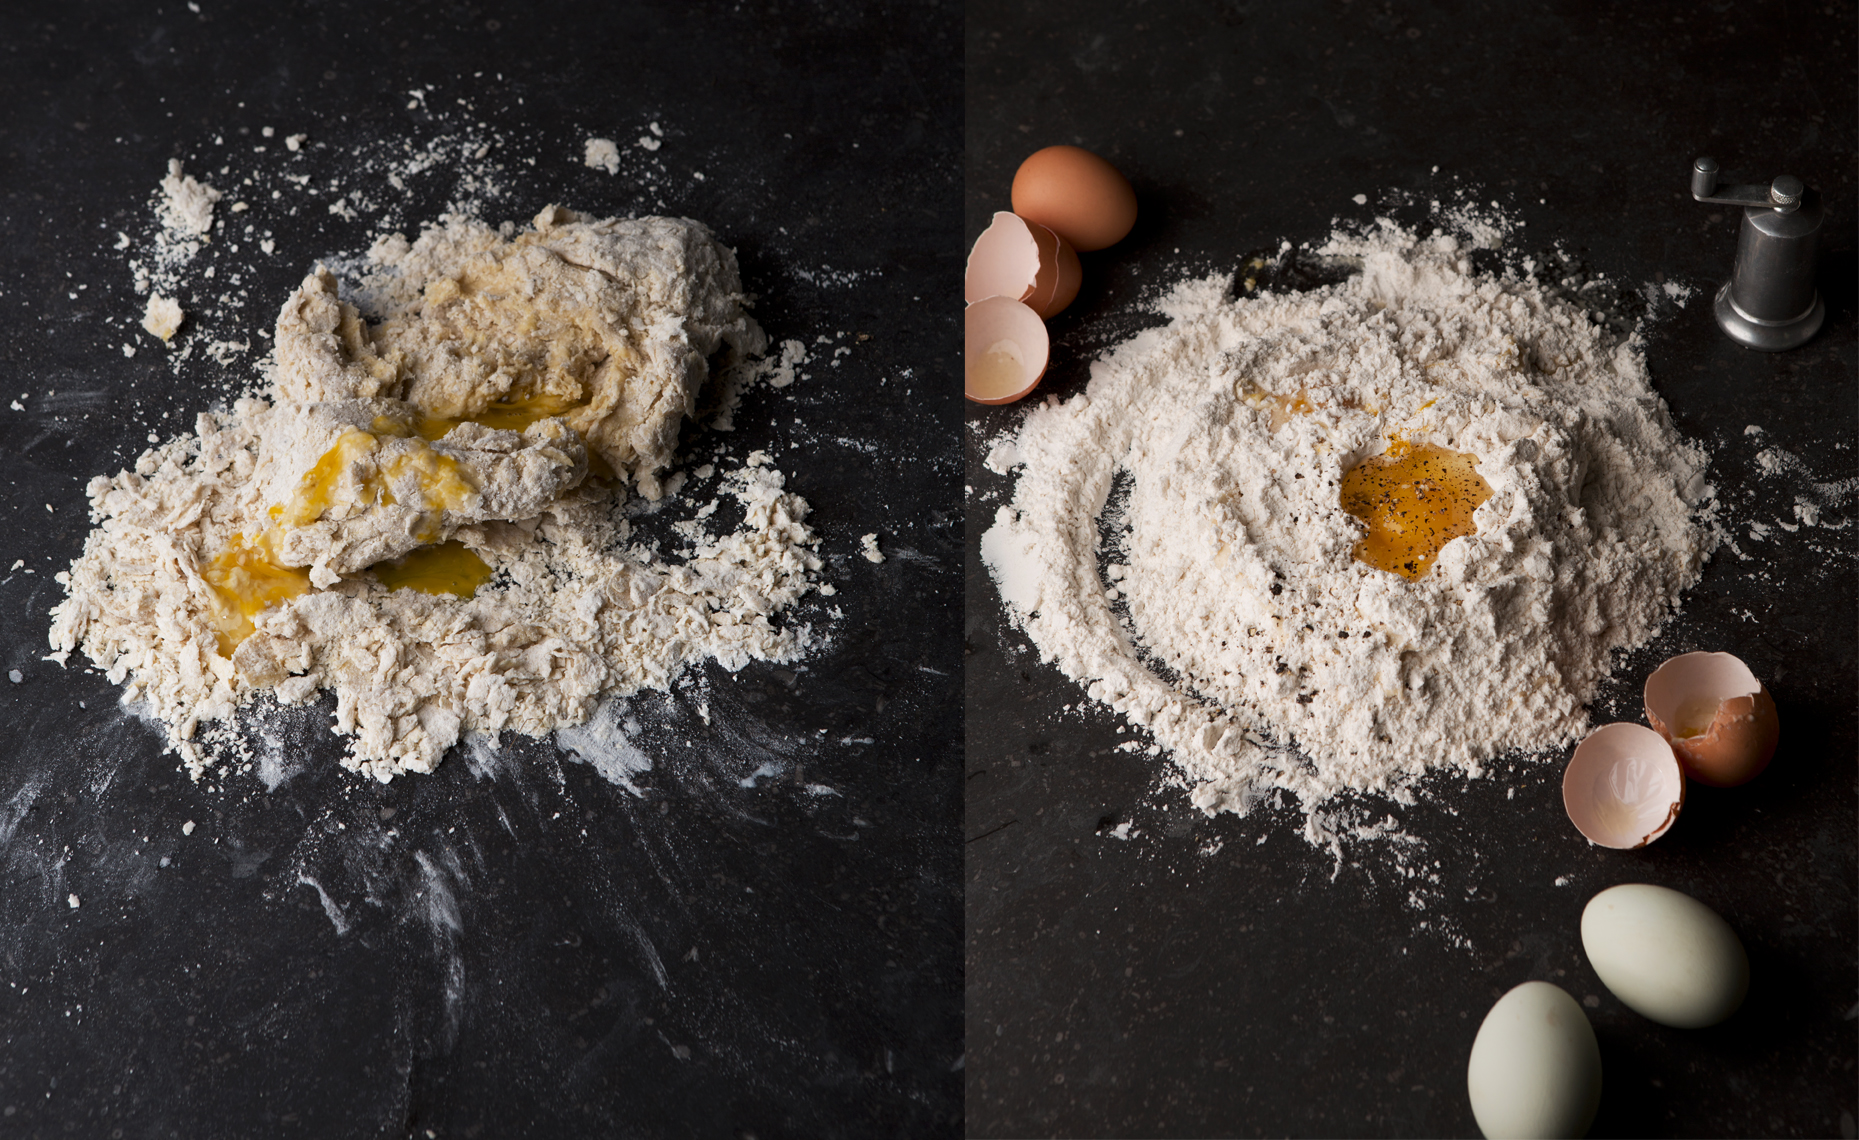 Egg in Flour for Pasta, Making Pasta, Rose Hodges Food Photography San Francisco